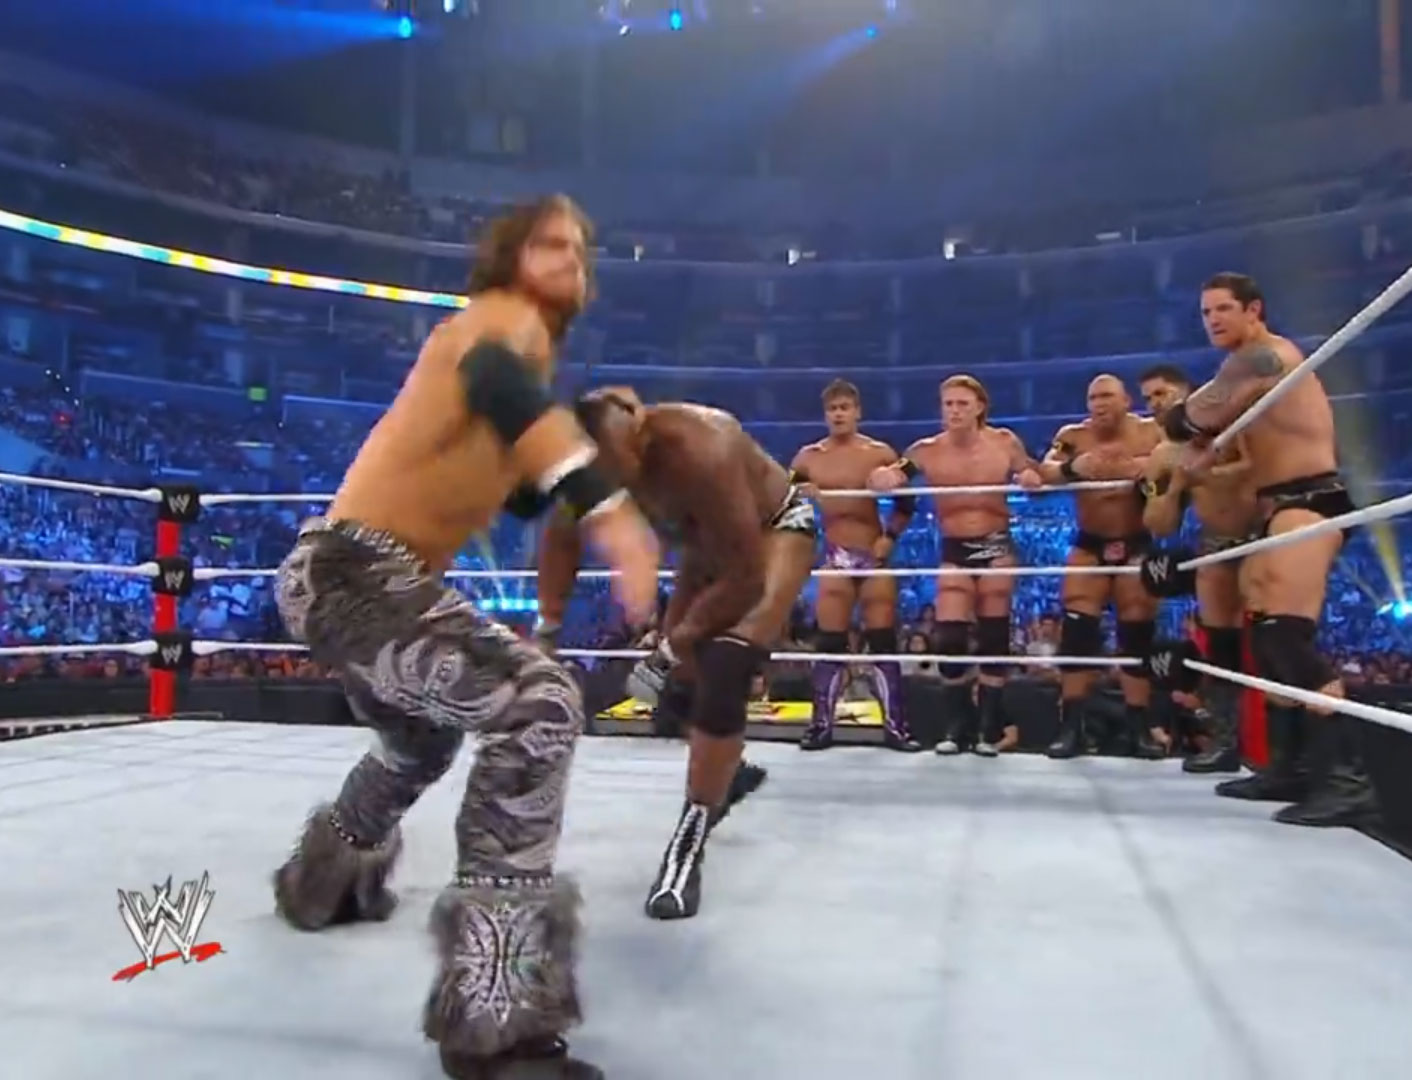 14-Person Tag Elimination WWE SummerSlam '10 Aug 15th 2010